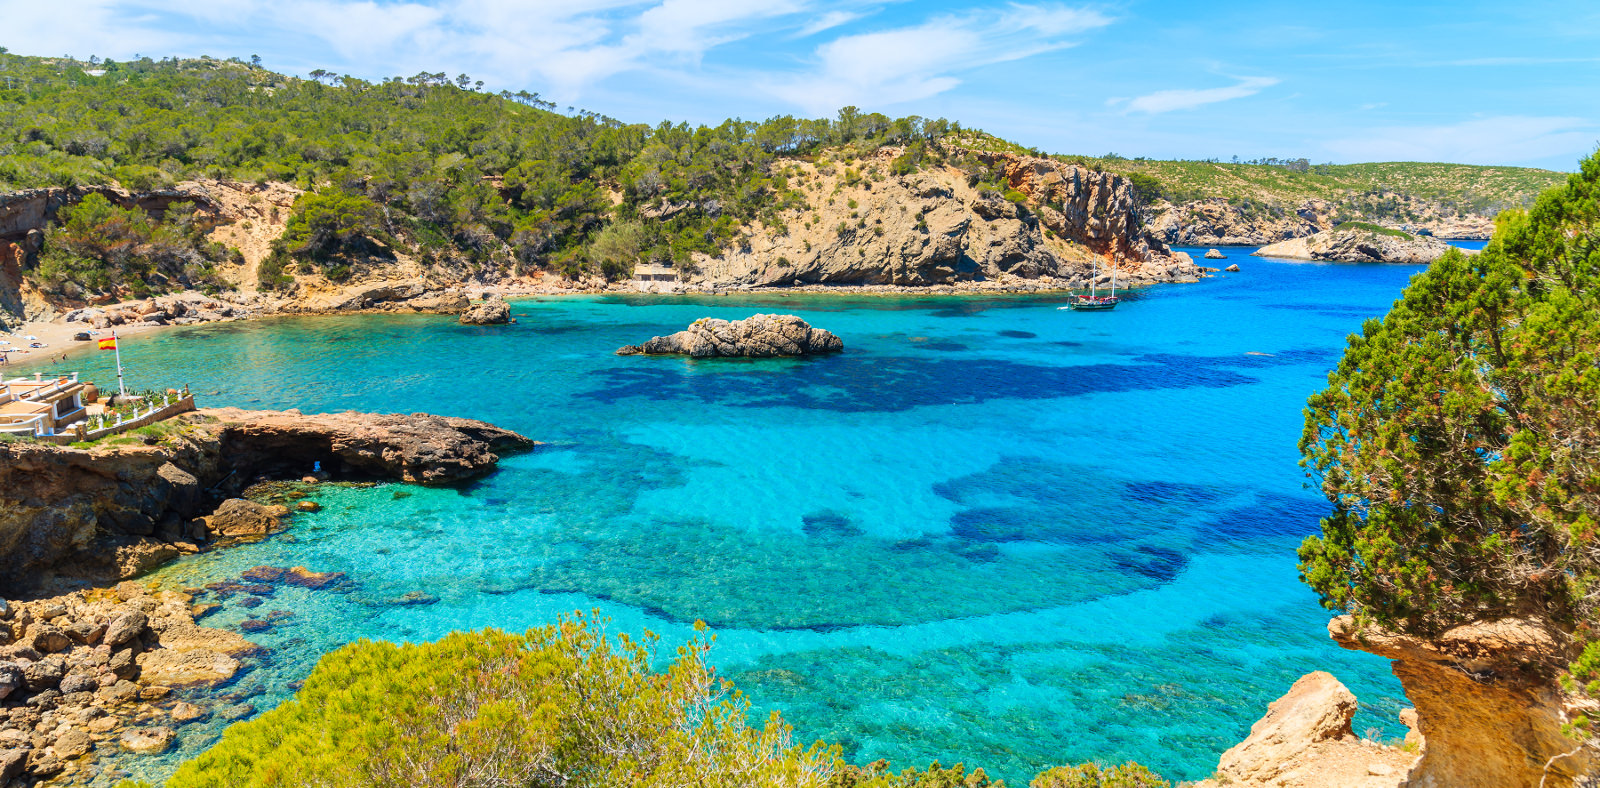 10 almost deserted beaches on the Balearic Islands